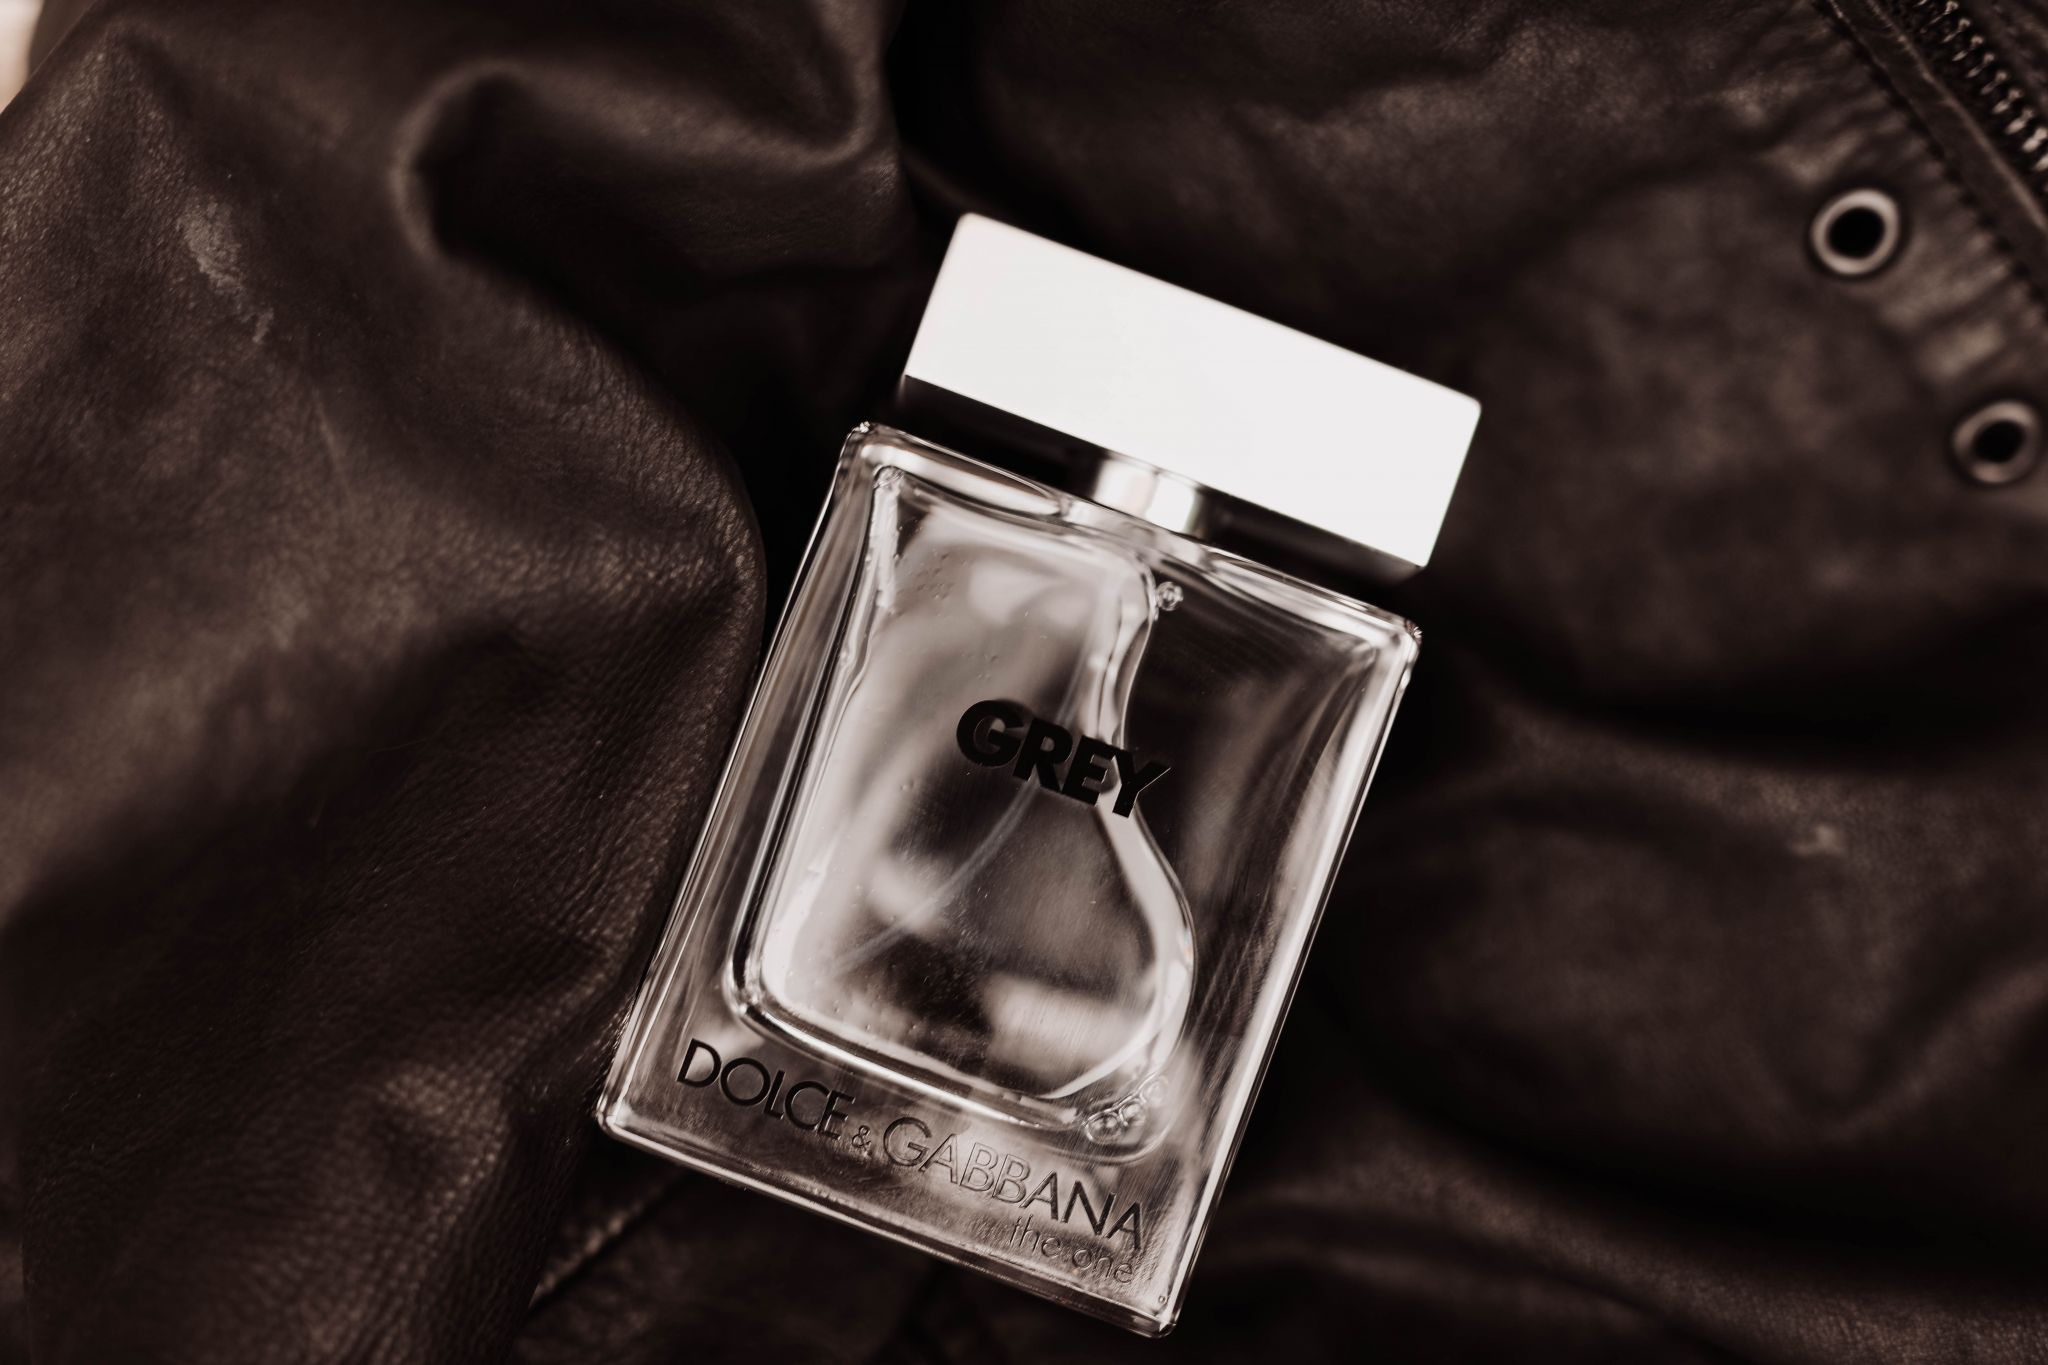 LEATHER FRAGRANCE-15